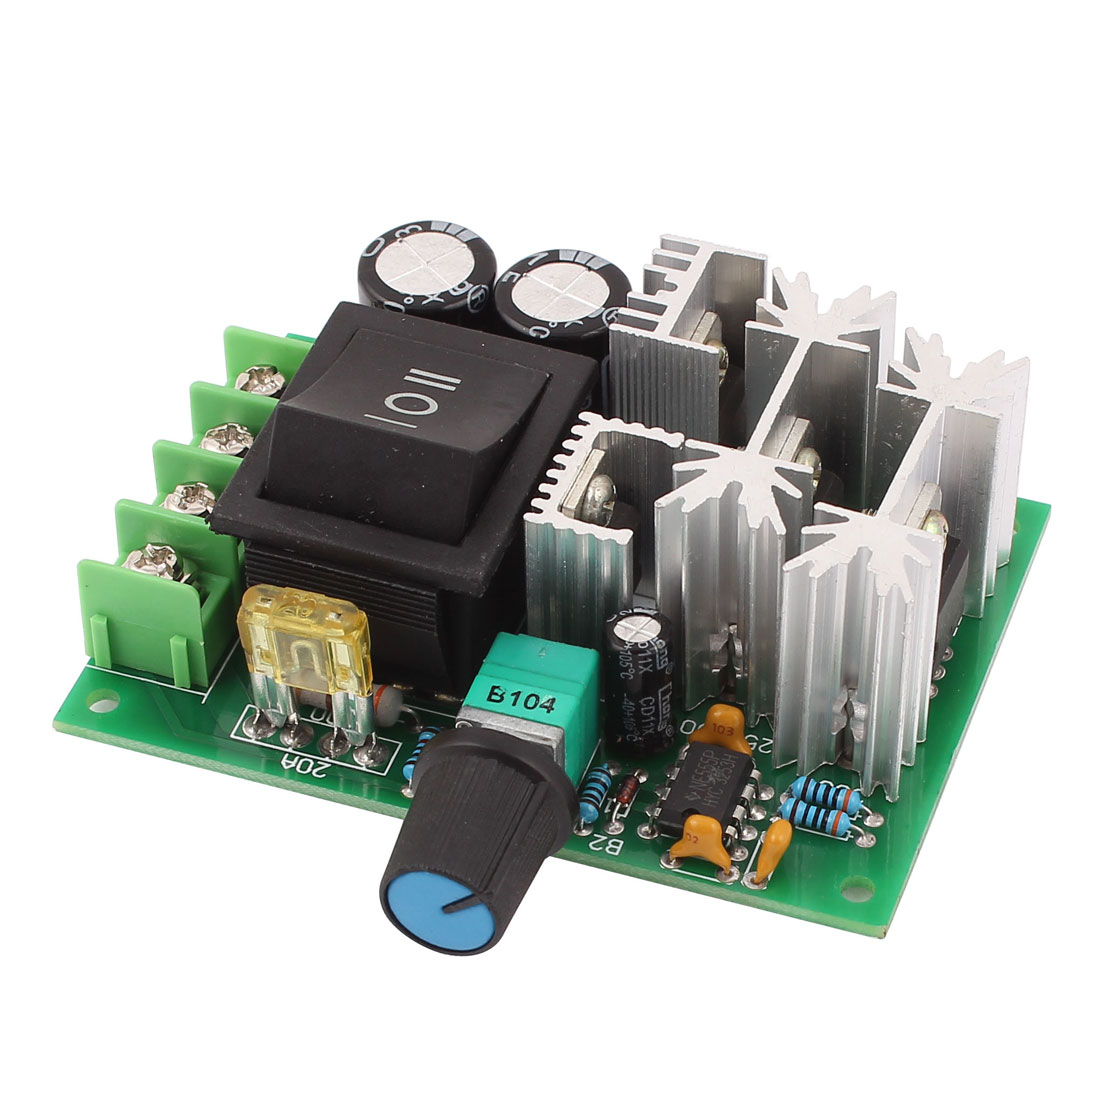 10V-60V 20A Pulse Width Modulator PWM DC Motor Speed Controller Regulator